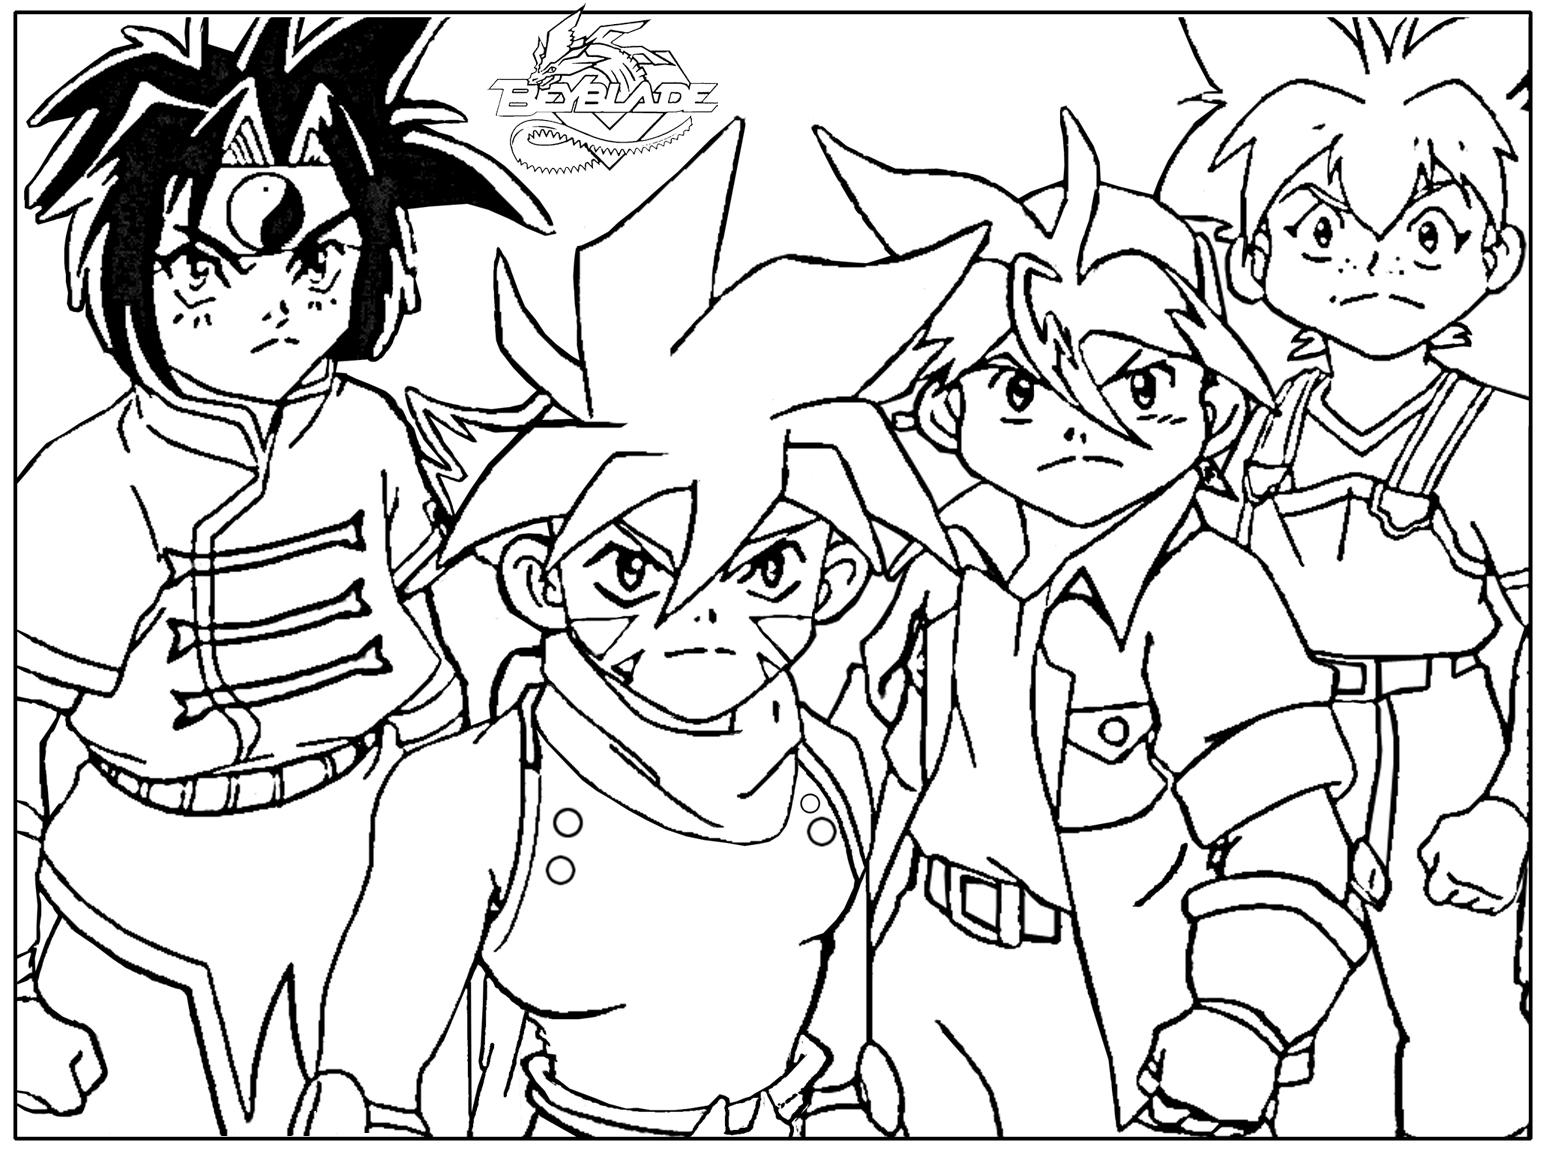 beyblade burst turbo coloring pages beyblade burst coloring pages black and white free pages turbo coloring burst beyblade